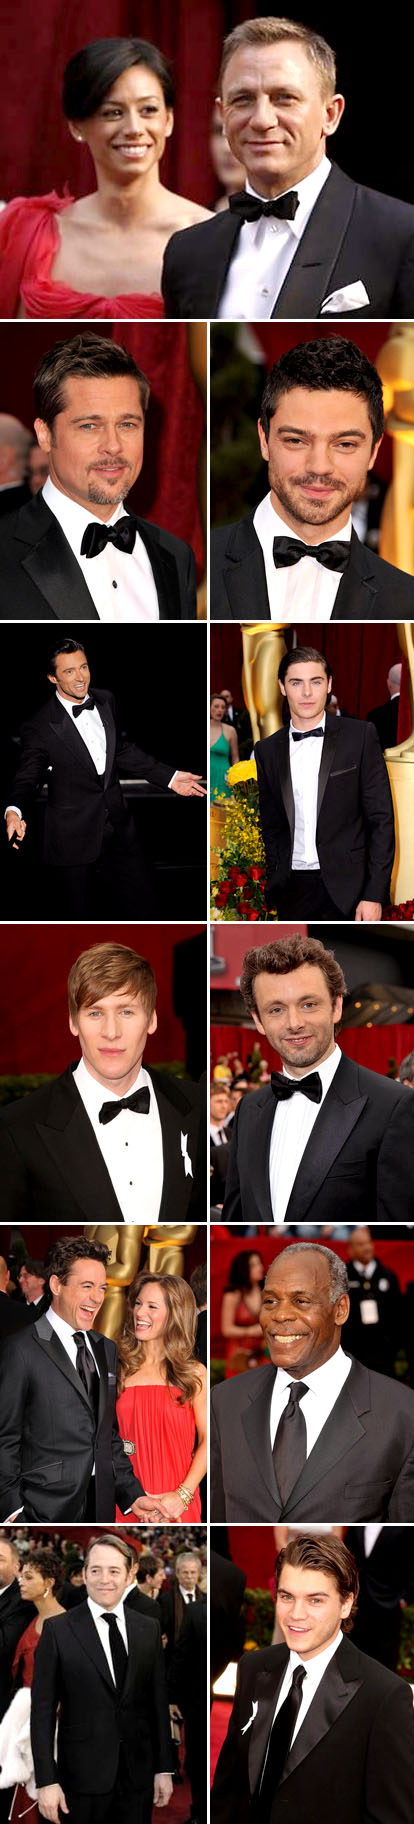 Men's wear wedding inspiration from the 2009 Academy Awards, classic and modern tuxedos on James Craig, Brad Pitt, Dominic Cooper, Hugh Jackman, Zach Efron, Robert Downey Jr., Matthew Broderick and Emile Hirsch